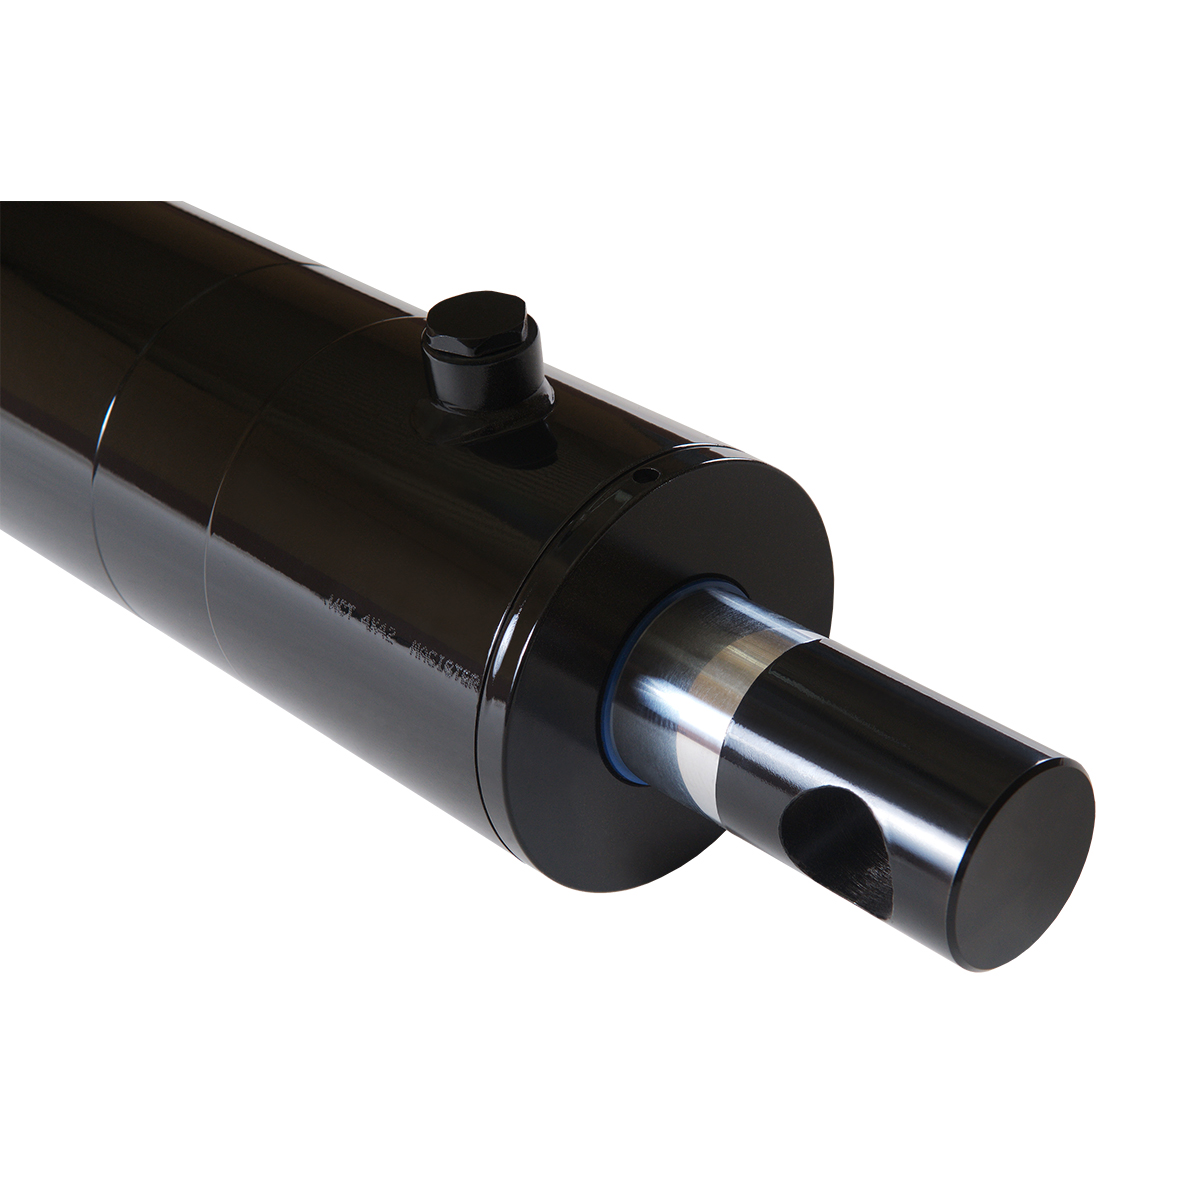 4 bore x 10 stroke hydraulic cylinder, welded pin eye double acting cylinder   Magister Hydraulics